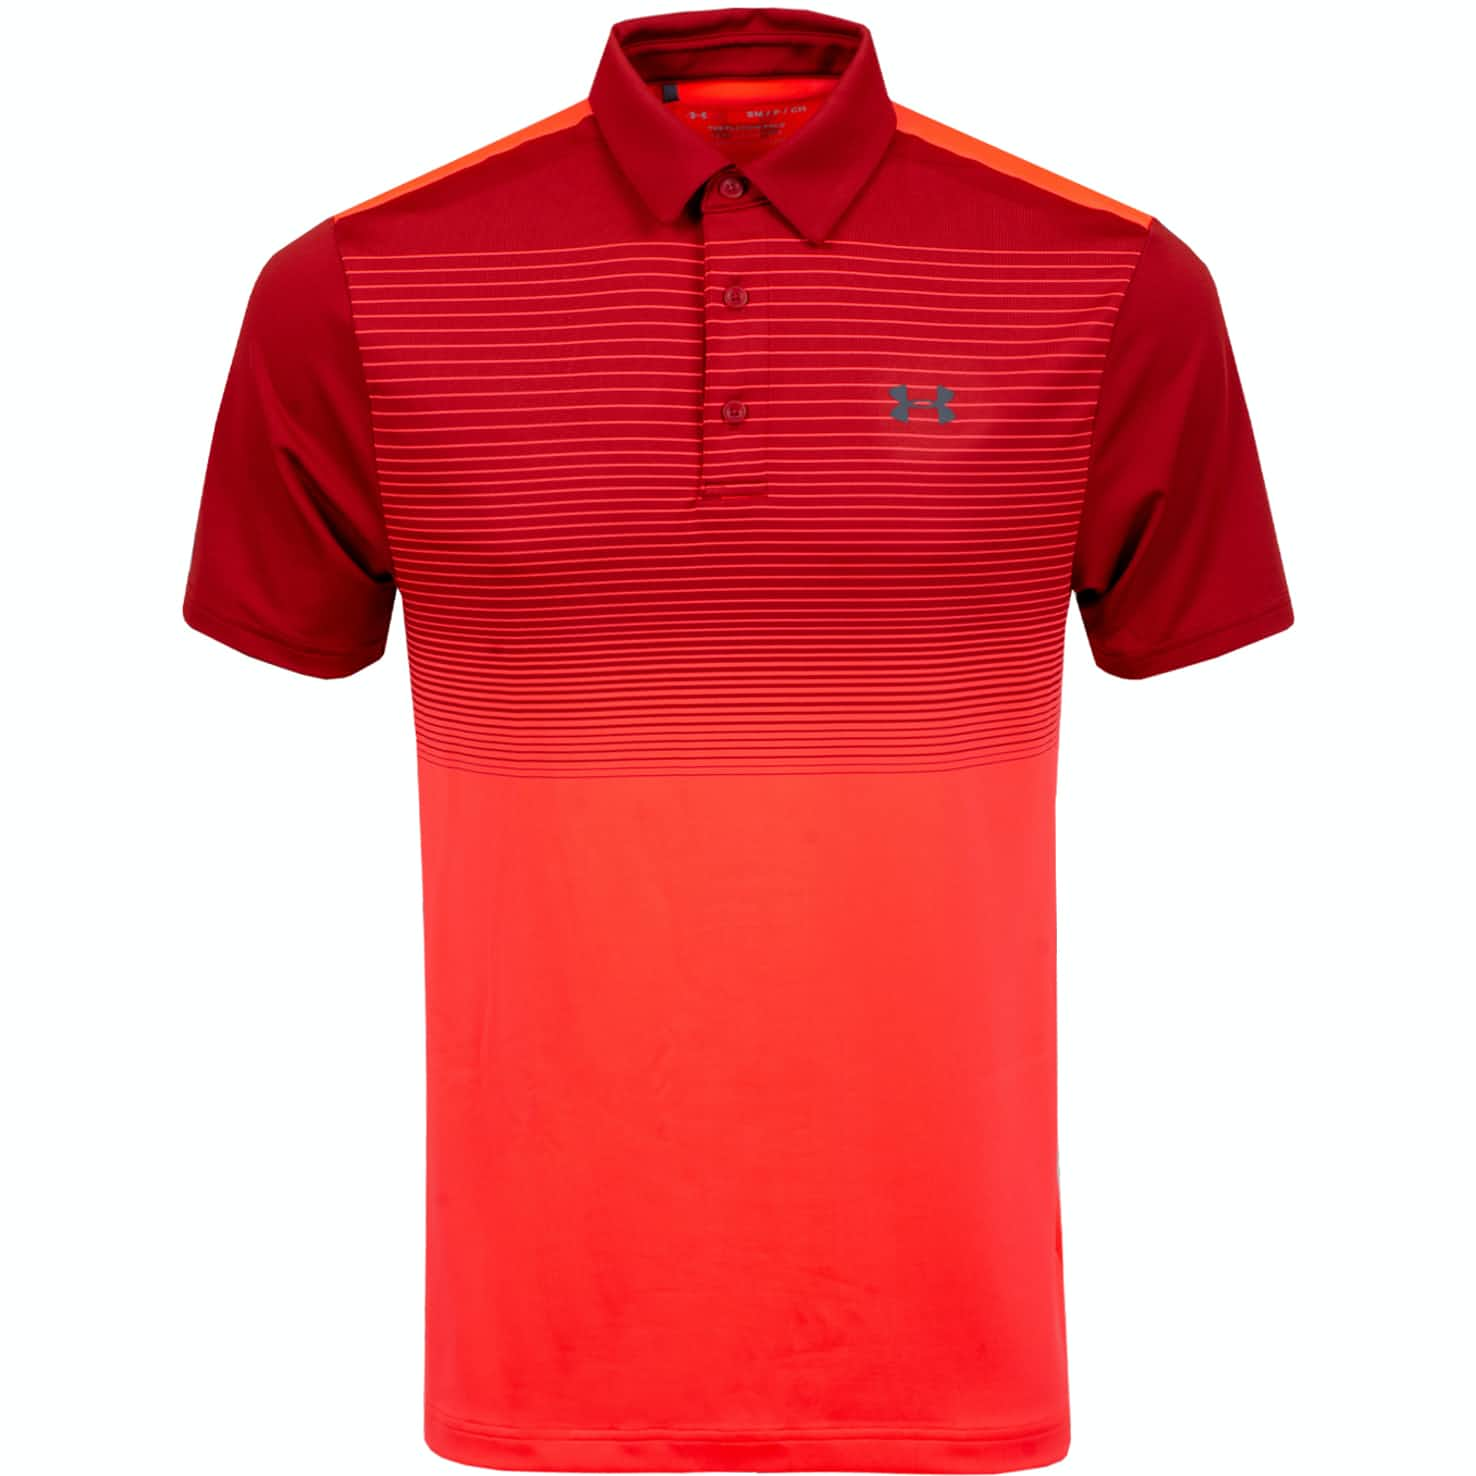 Playoff Polo 2.0 Stadium Red/Pitch Grey - AW19